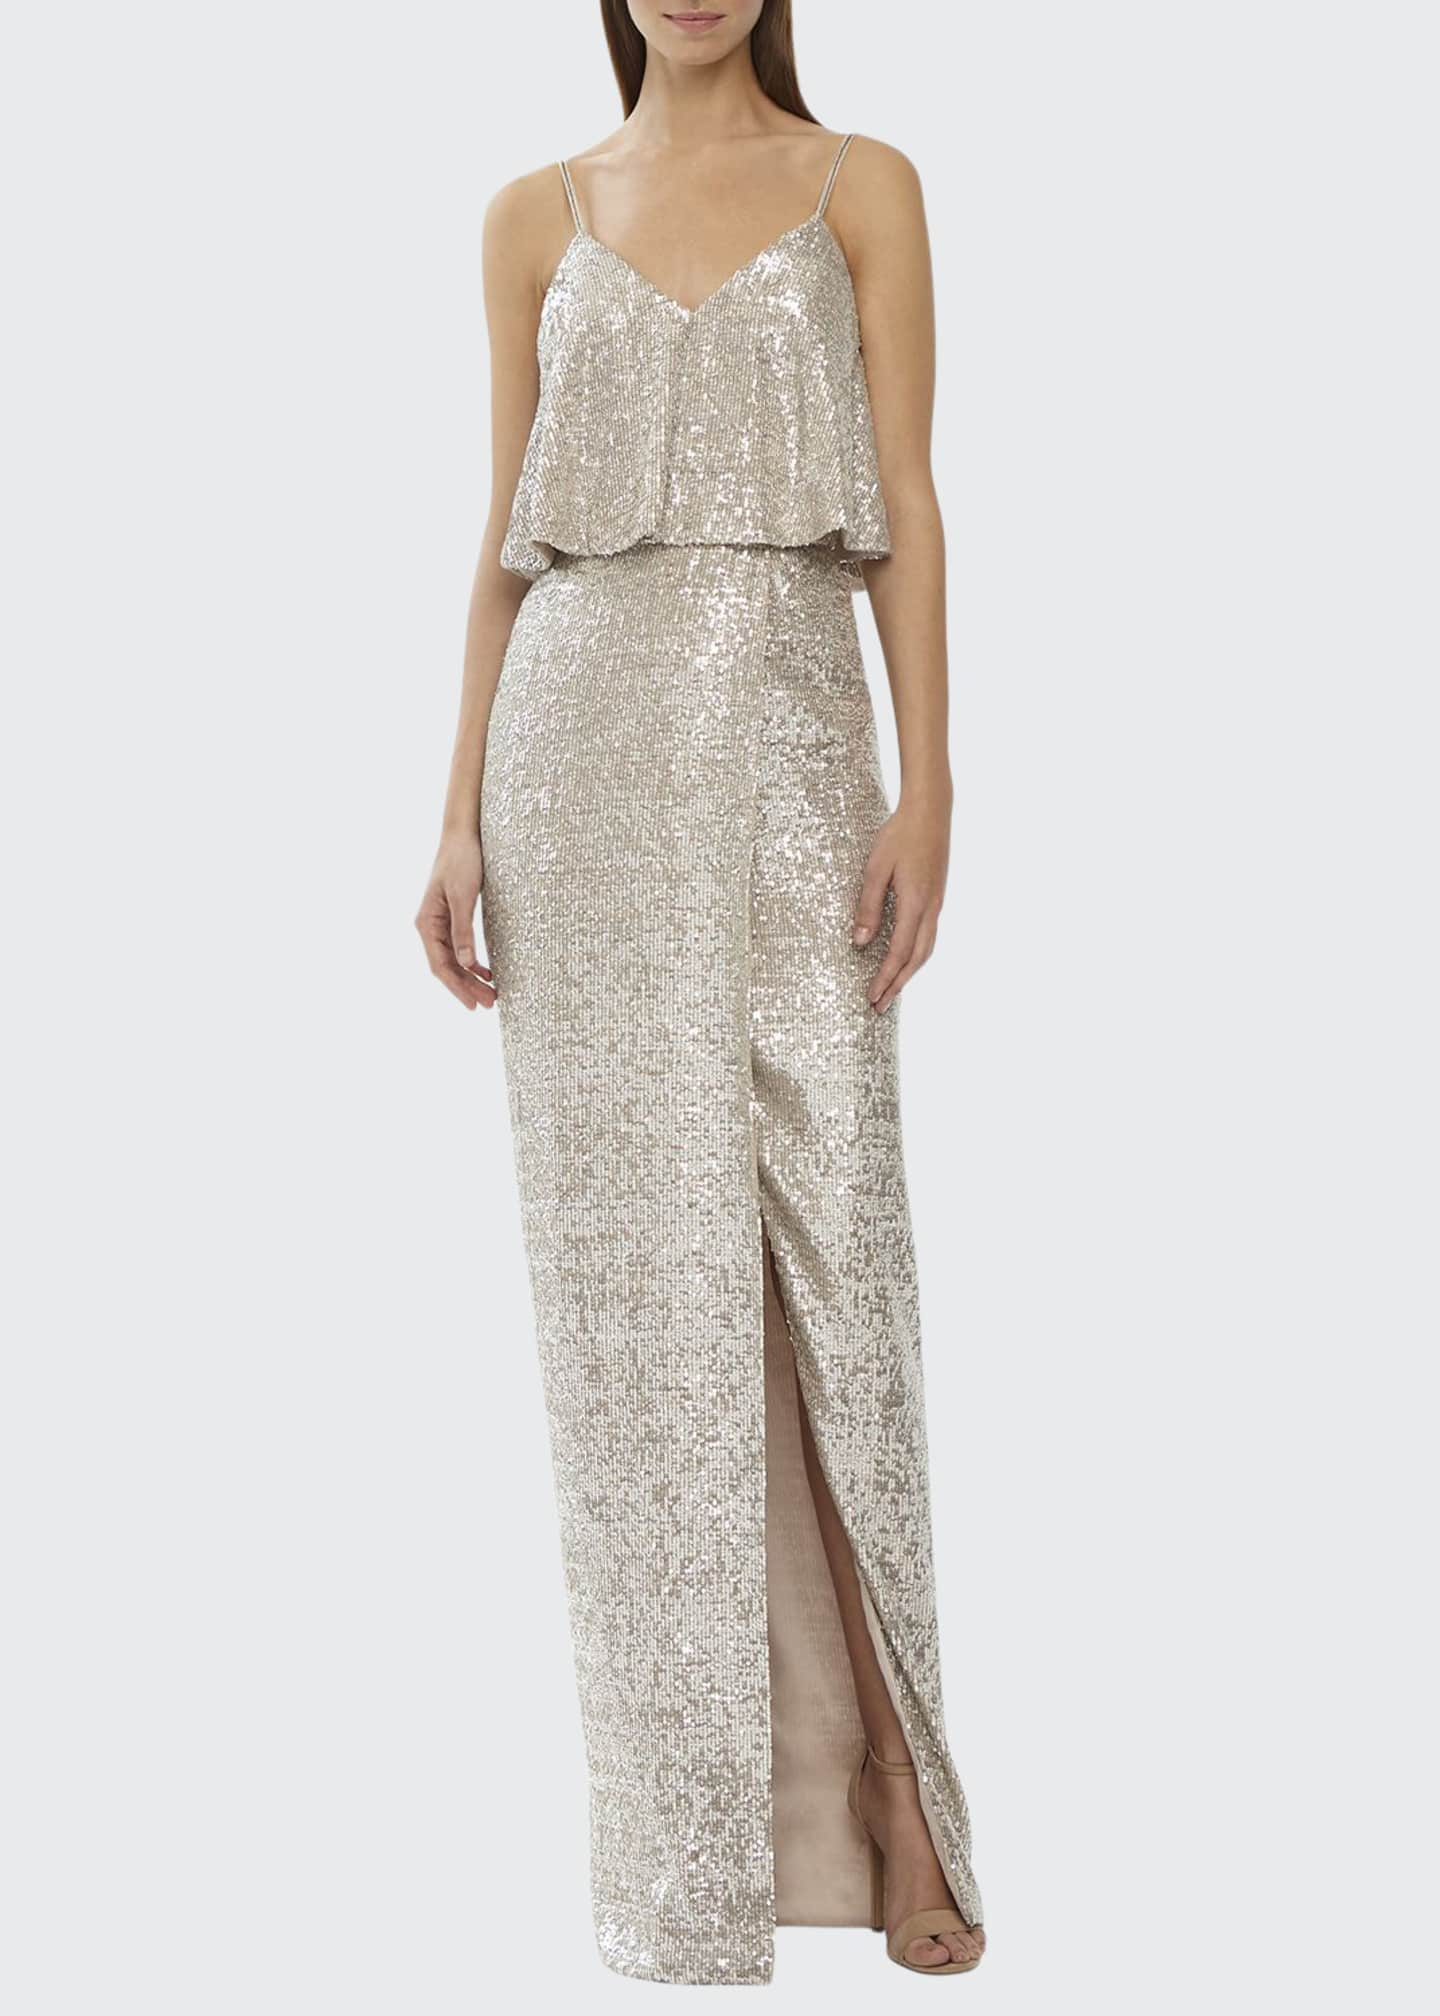 ML Monique Lhuillier Sequin V-Neck Column Dress w/